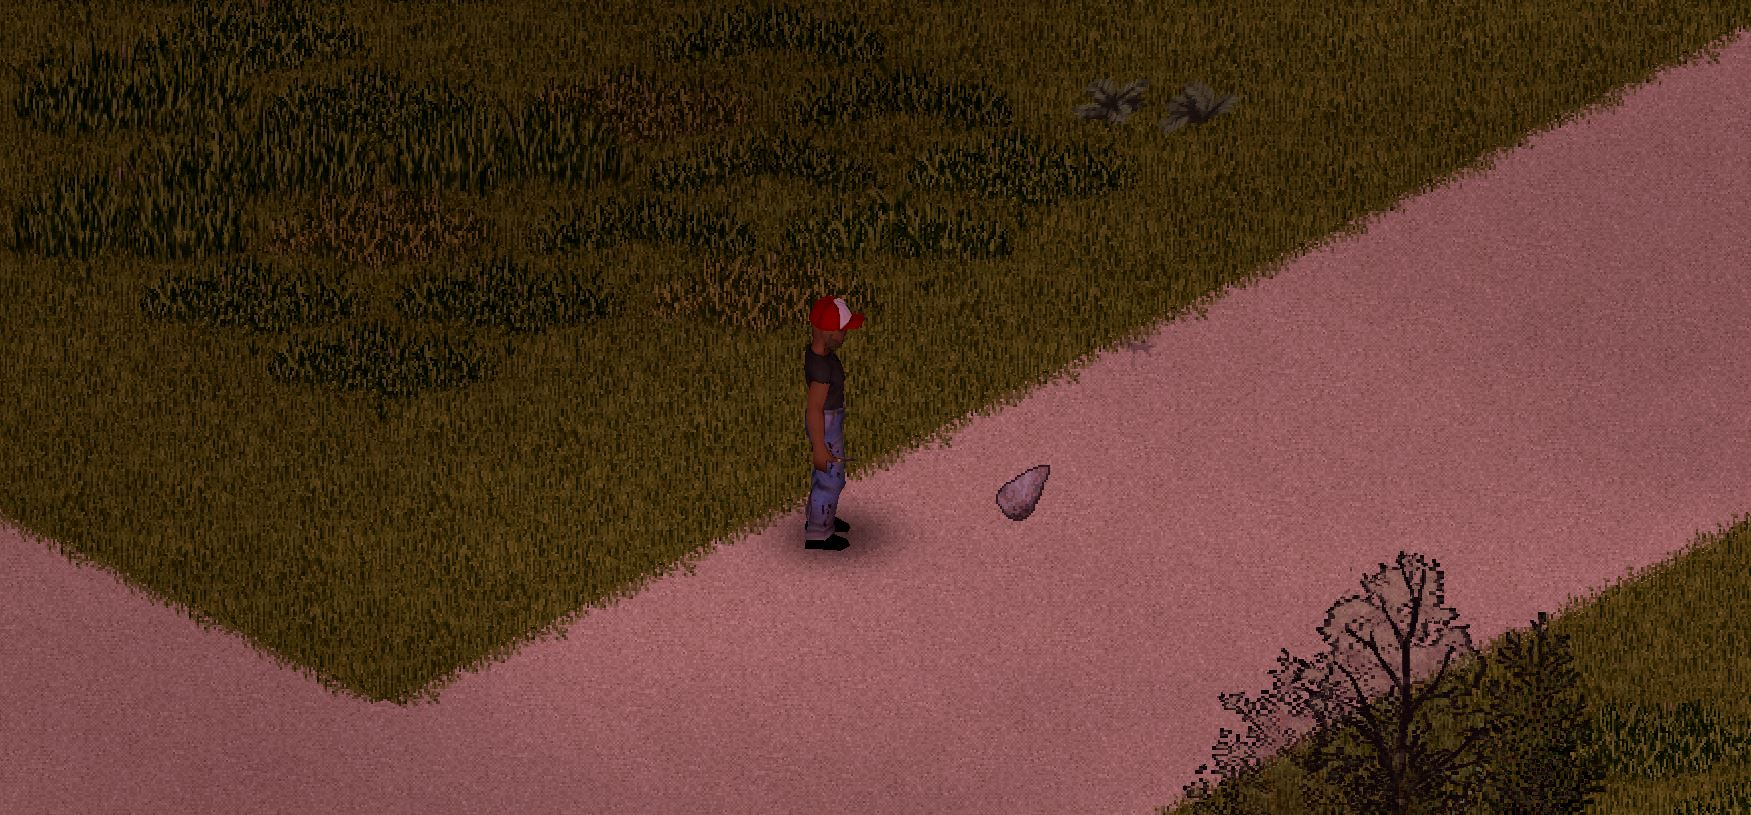 a character standing on a road next to a chipped stone in Project Zomboid